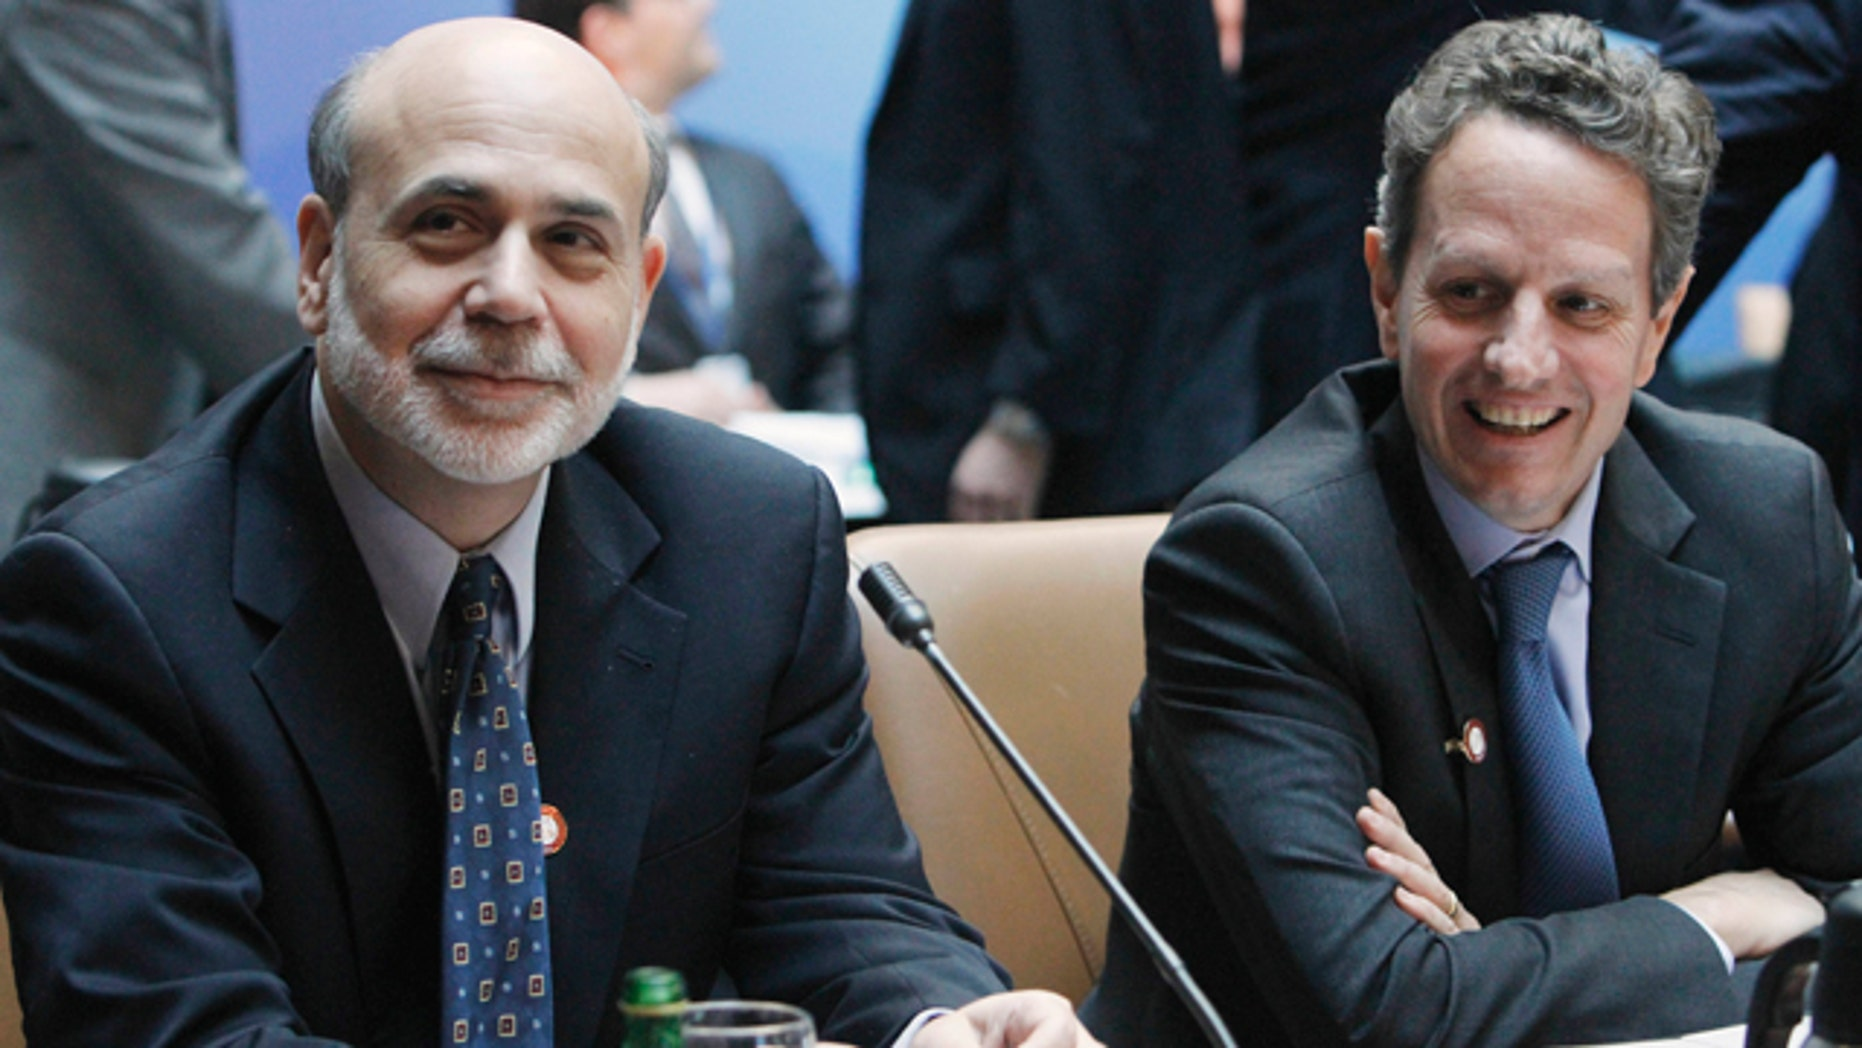 April 15: Federal Reserve Chairman Ben Bernanke, left, sits with Treasury Secretary Timothy Geithner before a meeting of the G-20 at the World Bank/IMF Spring Meetings 2011 in Washington.